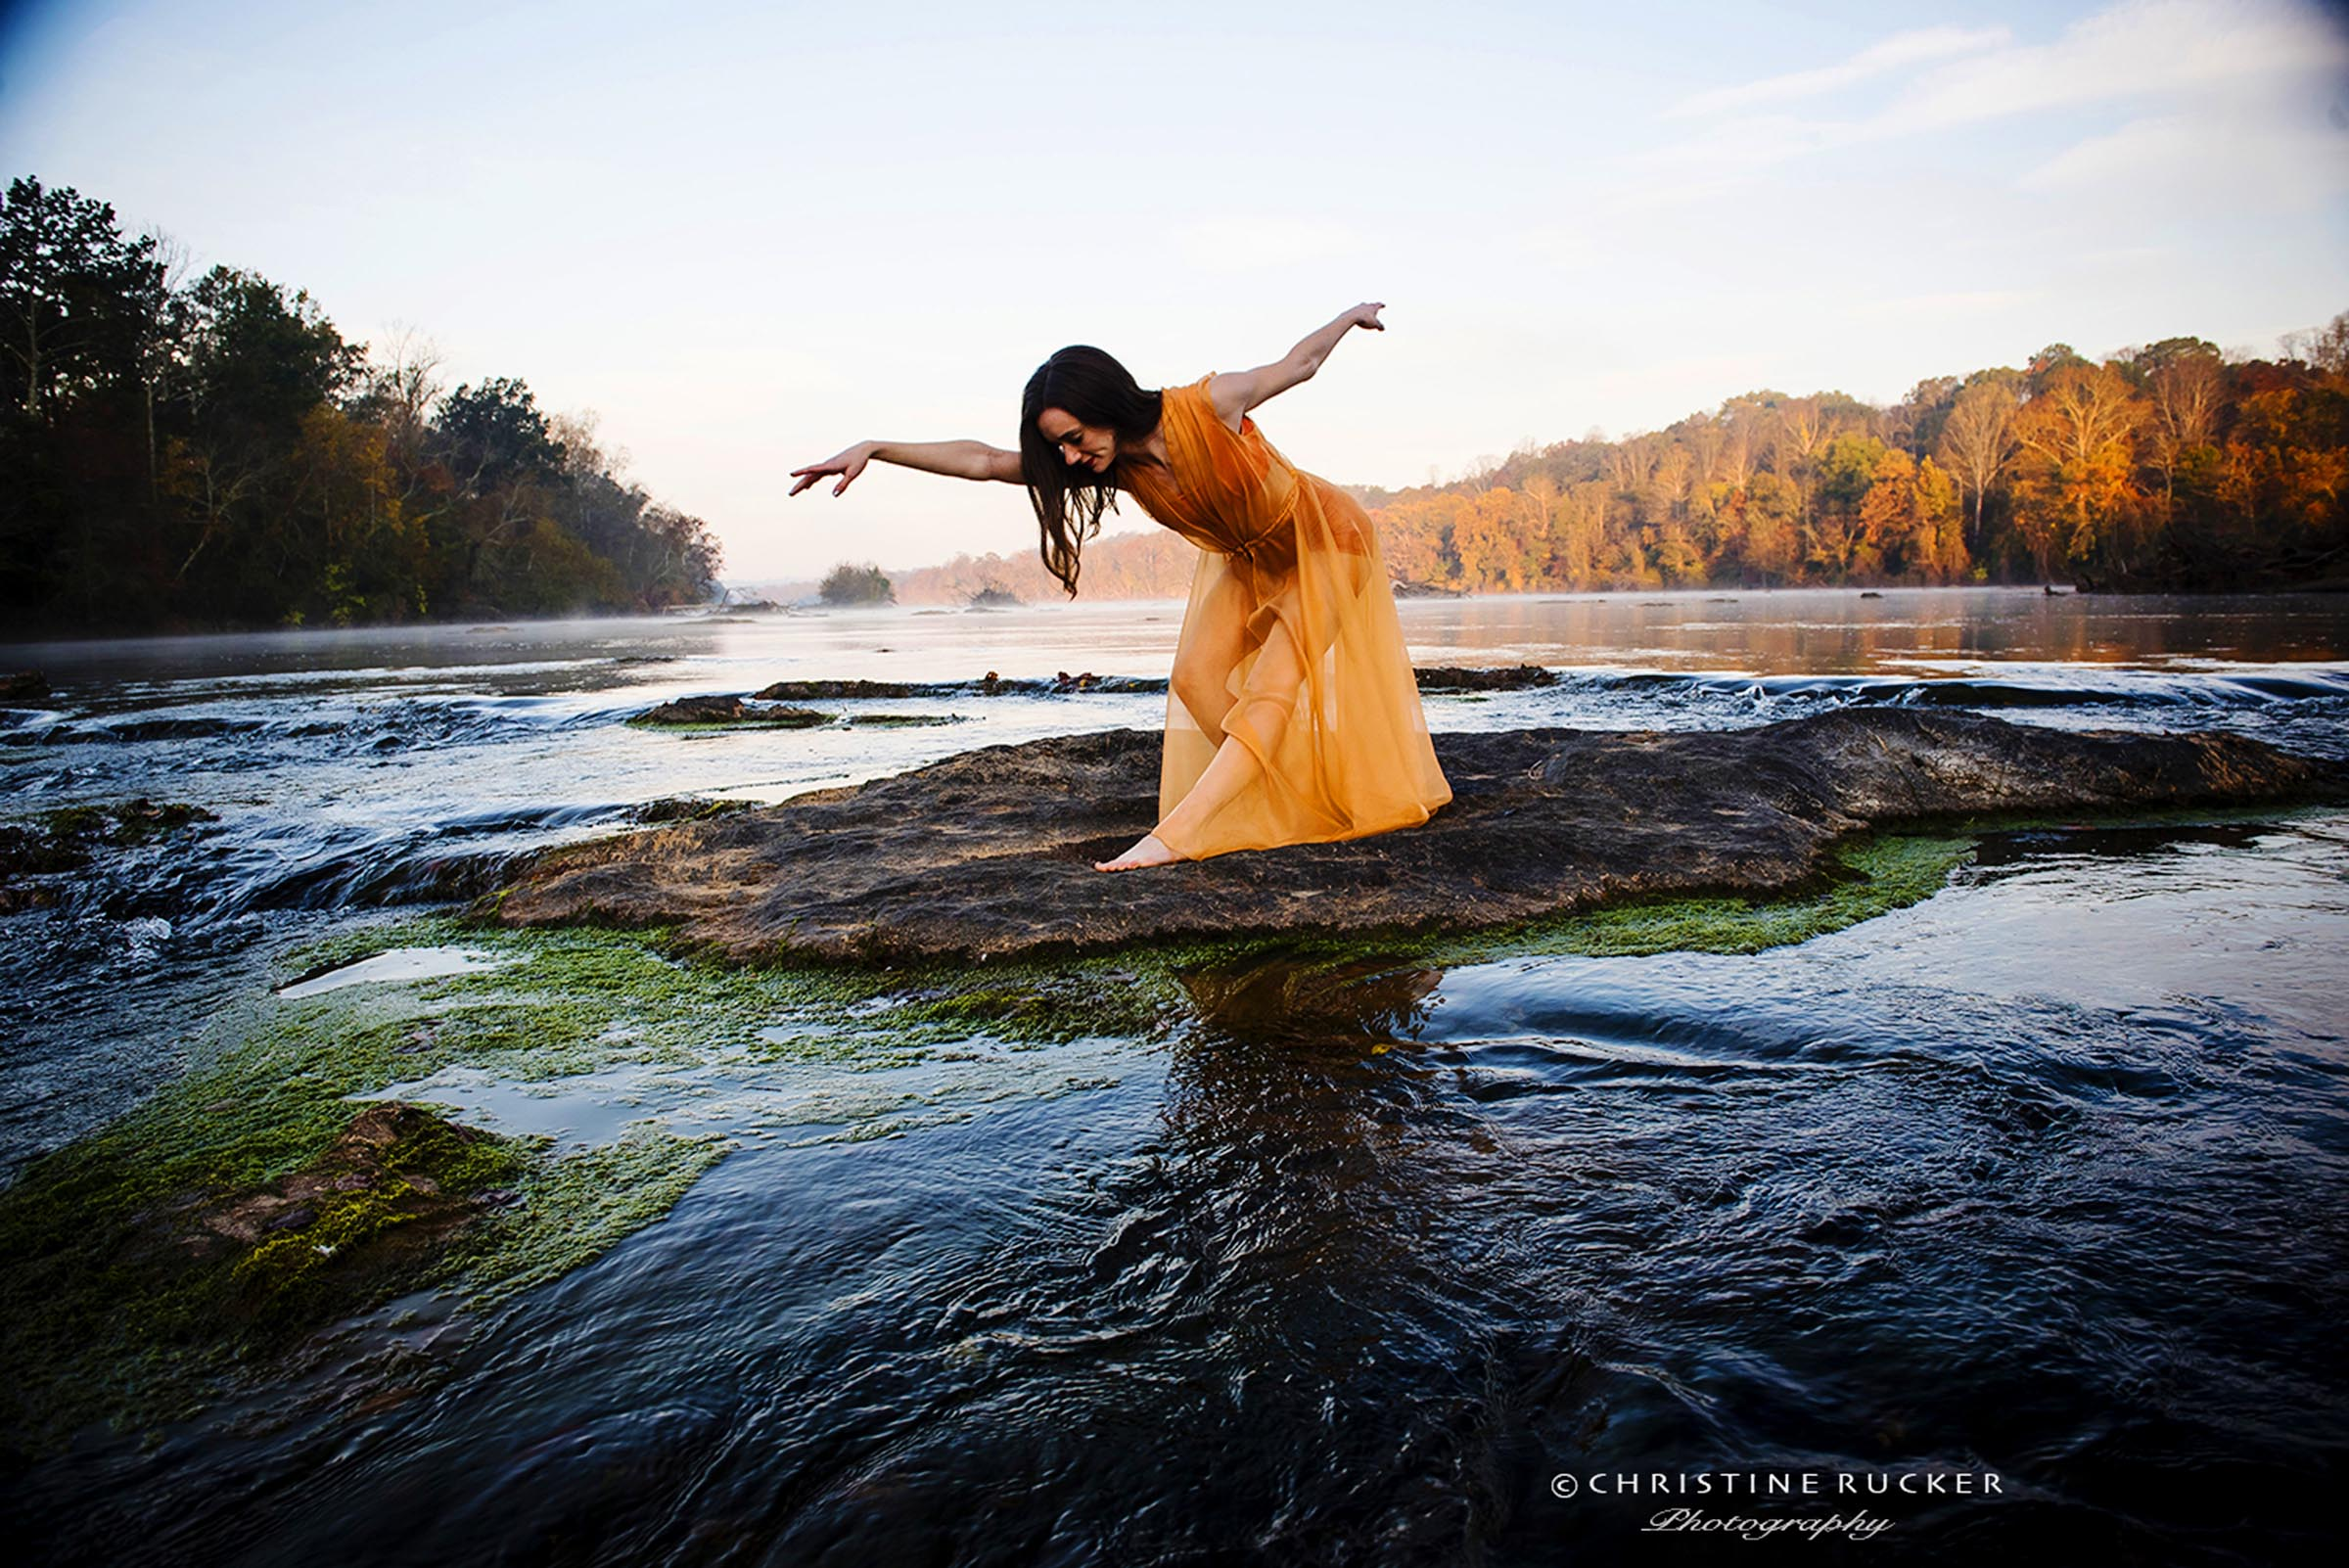 """DANCE FOR THE RIVER"" BY CHRISTINE RUCKER AT SECCA FEB 8 - MAR 11"